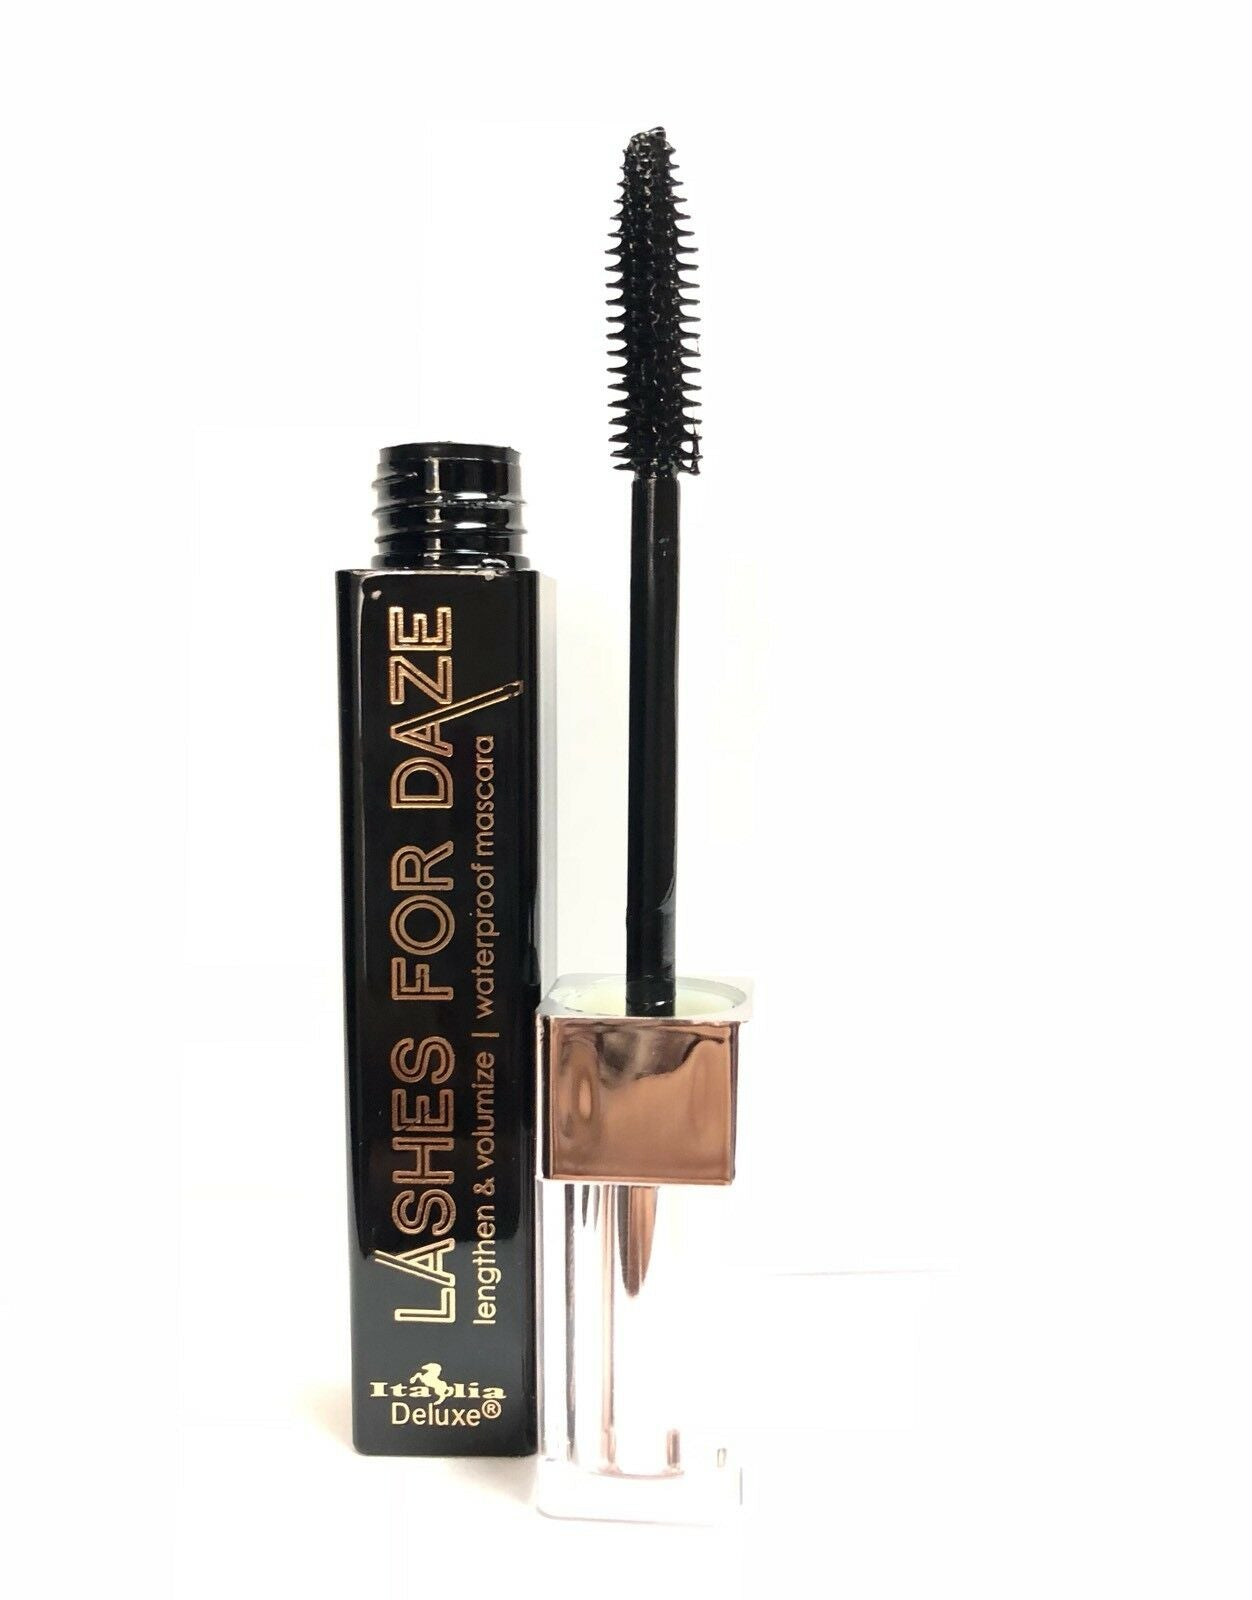 Italia Deluxe Lashes For Daze Waterproof Mascara